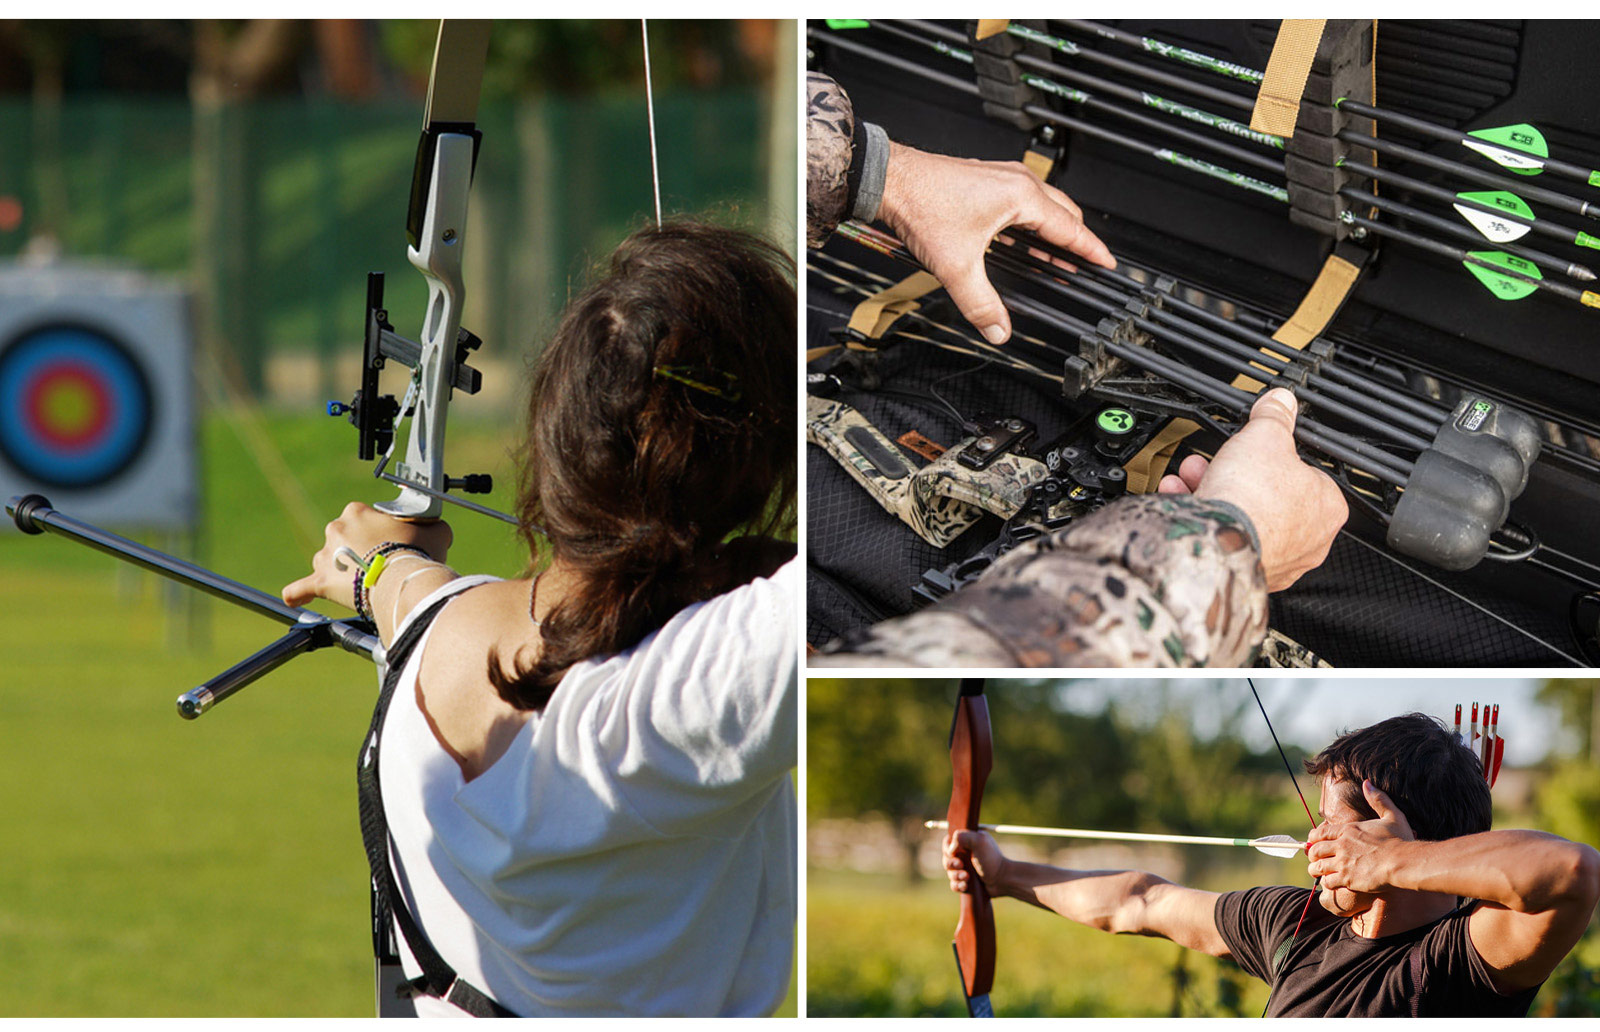 pelican consumer blog tips bullseye archery aim skill